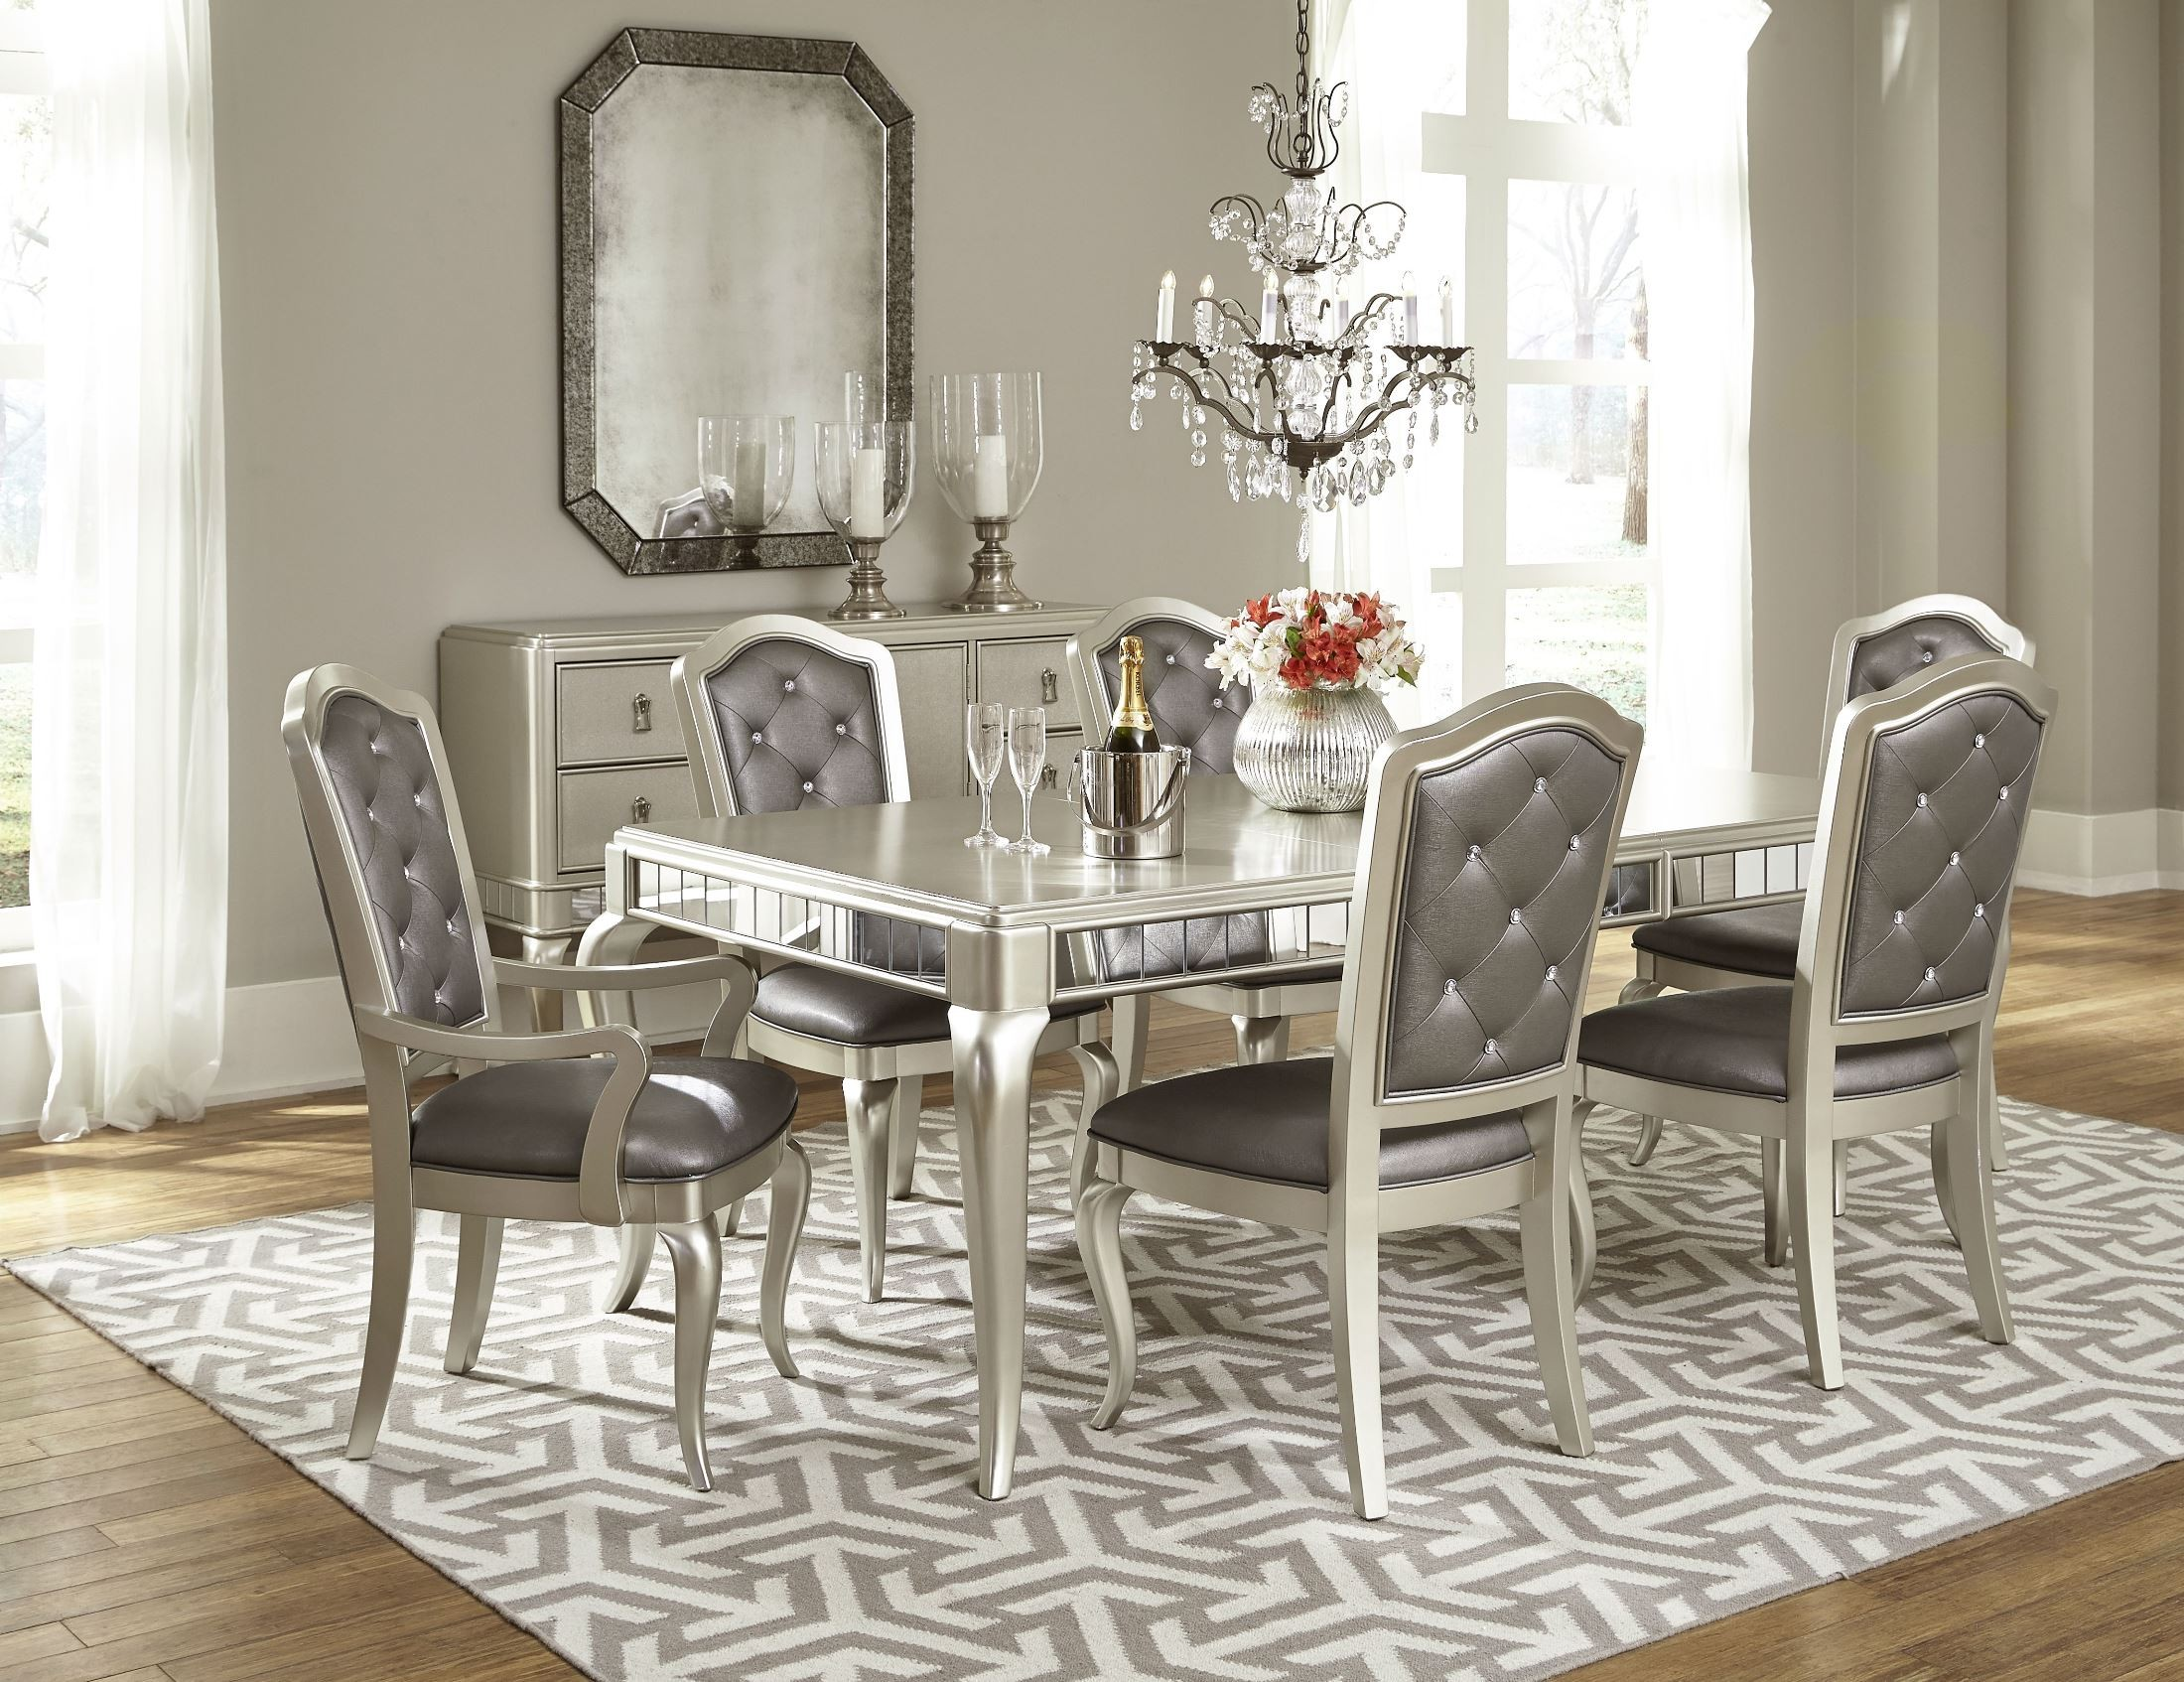 dinning rowico in room warmth from dining farmhouse gallery rustic the ways view classic design to modern rooms bring